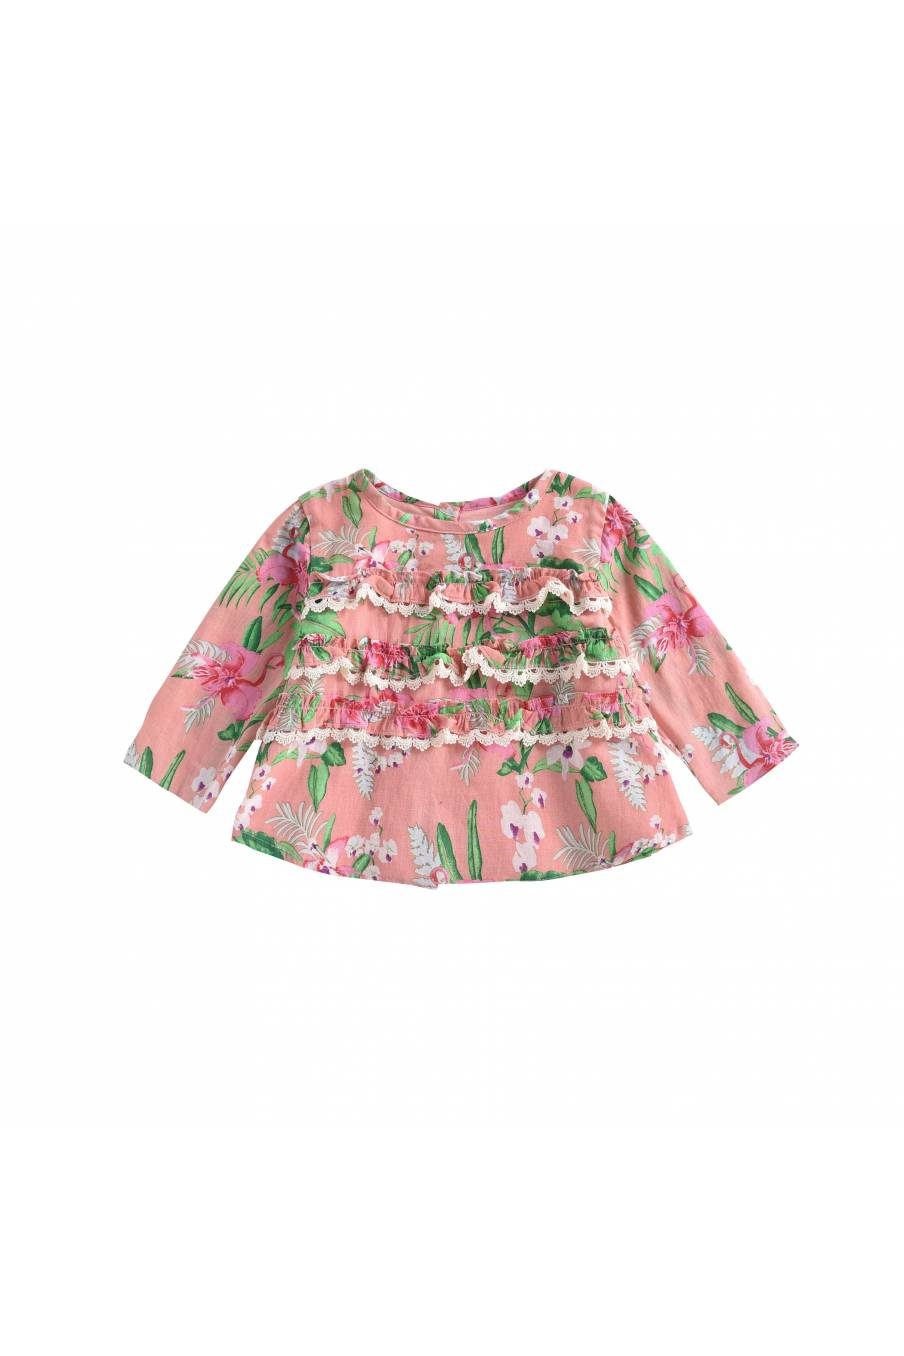 Blouse Campeche Sienna Flamingo